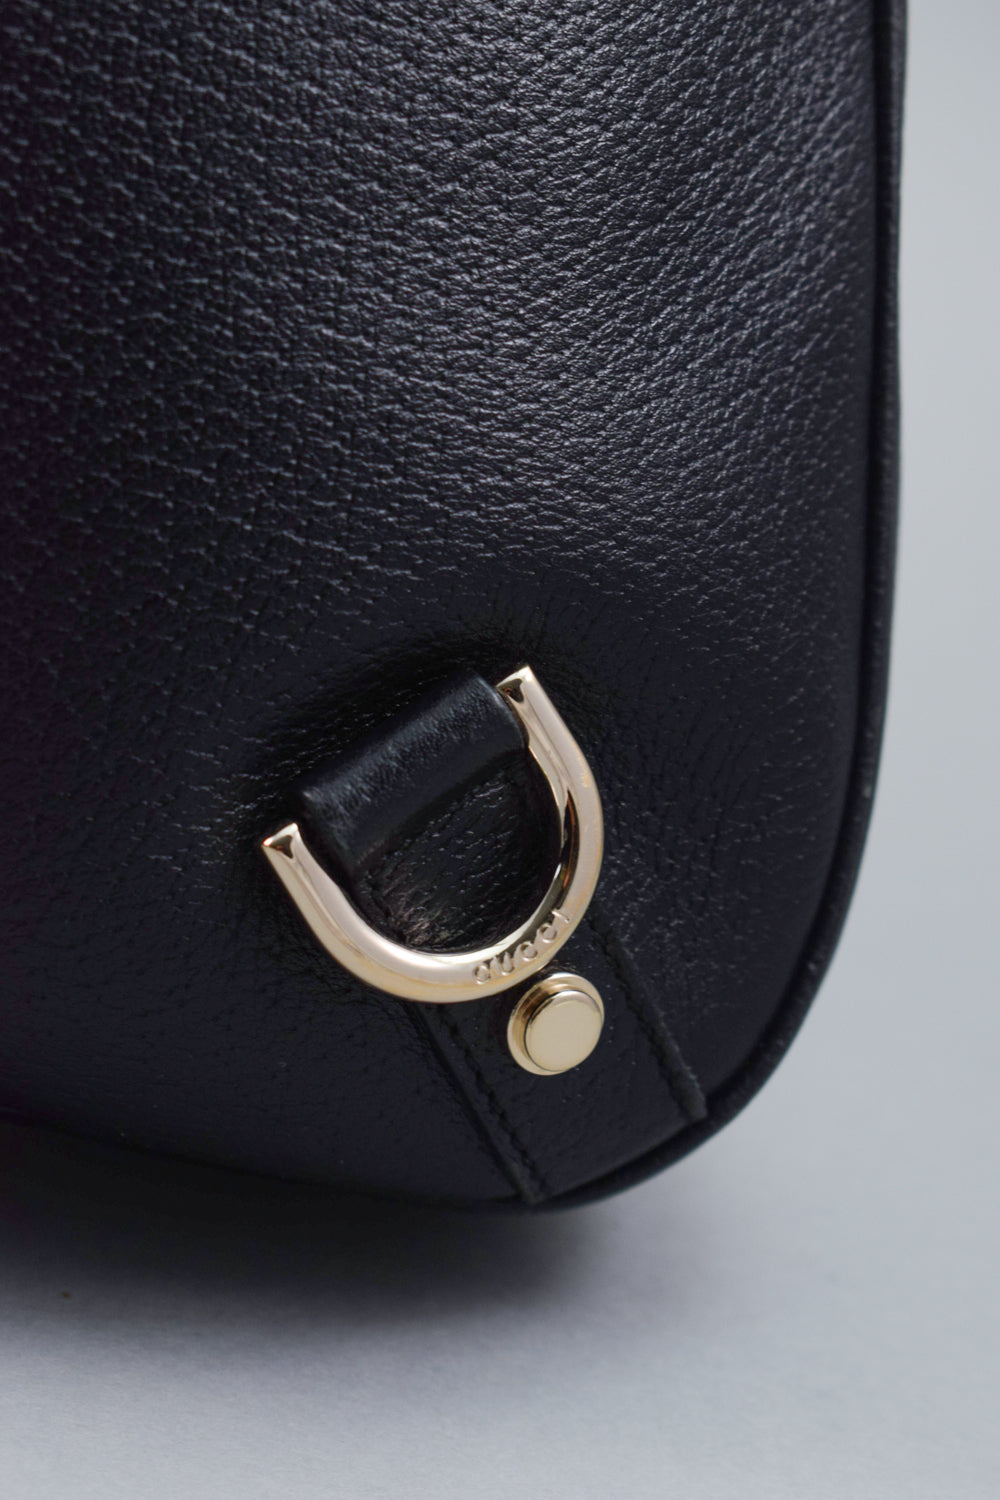 Gucci Black Leather Top Handle Hobo